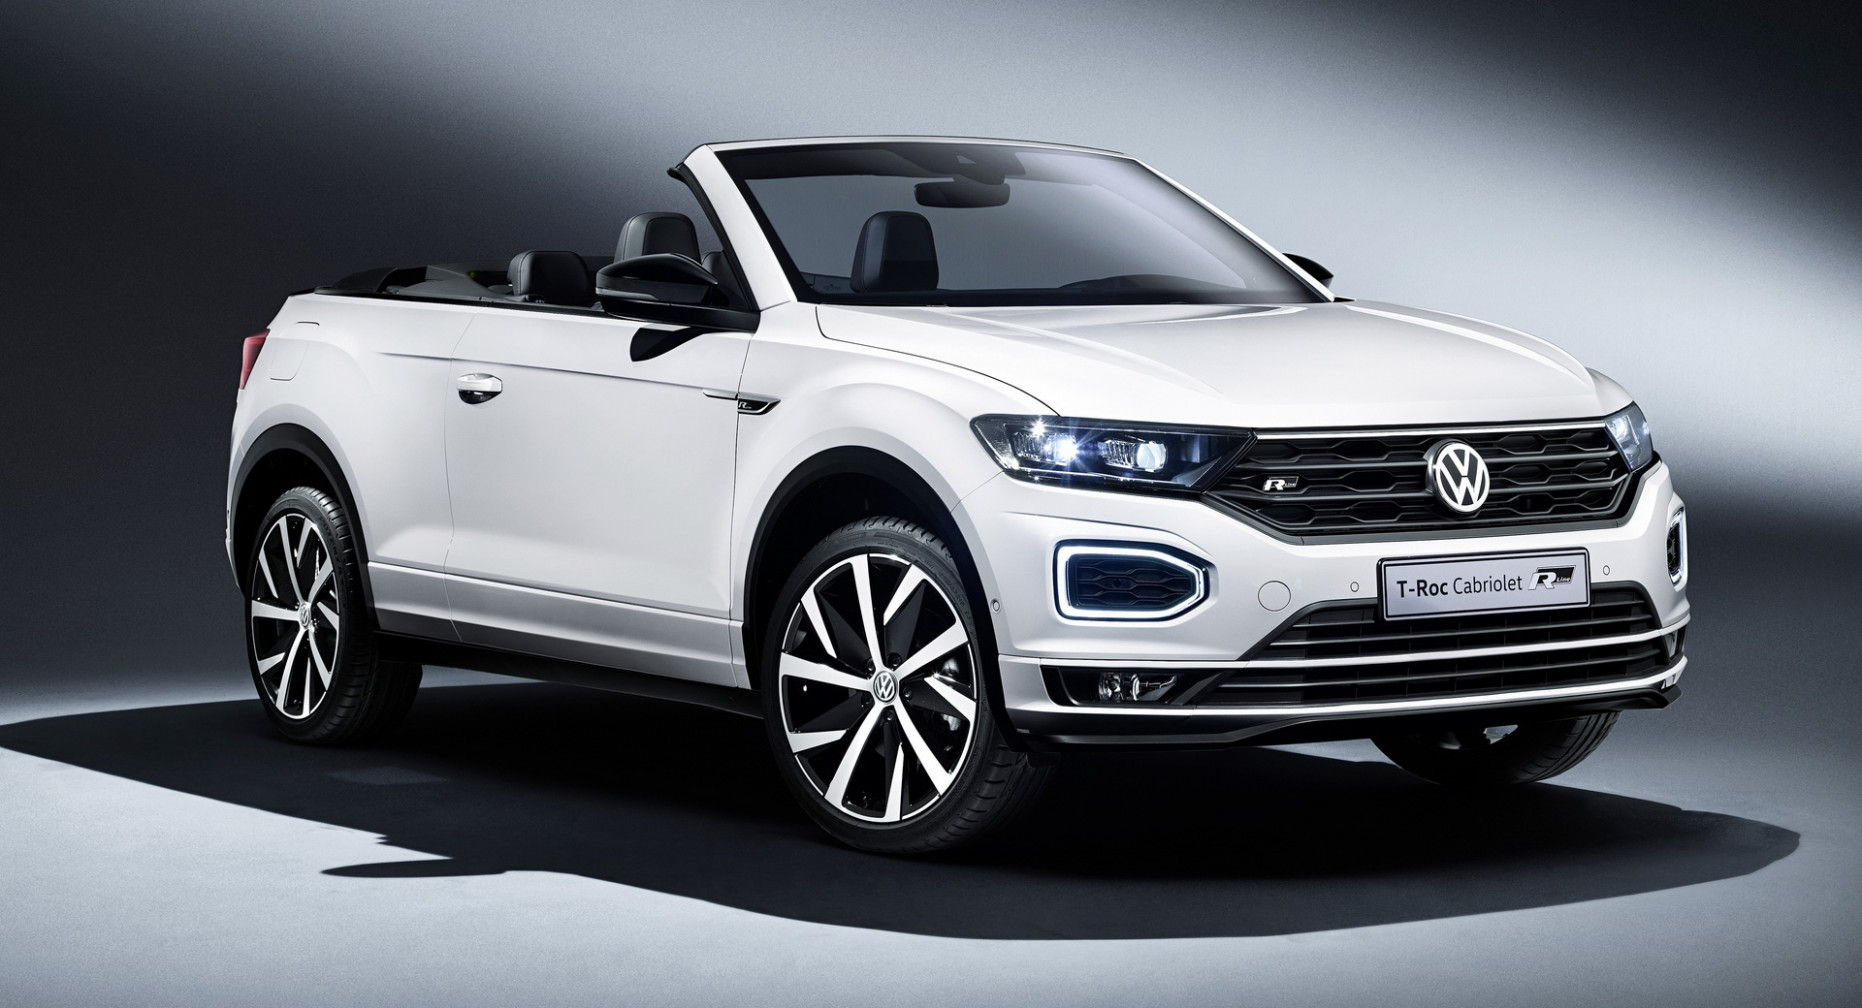 10 VW T-Roc Cabriolet Available Now In The UK, Priced From ..